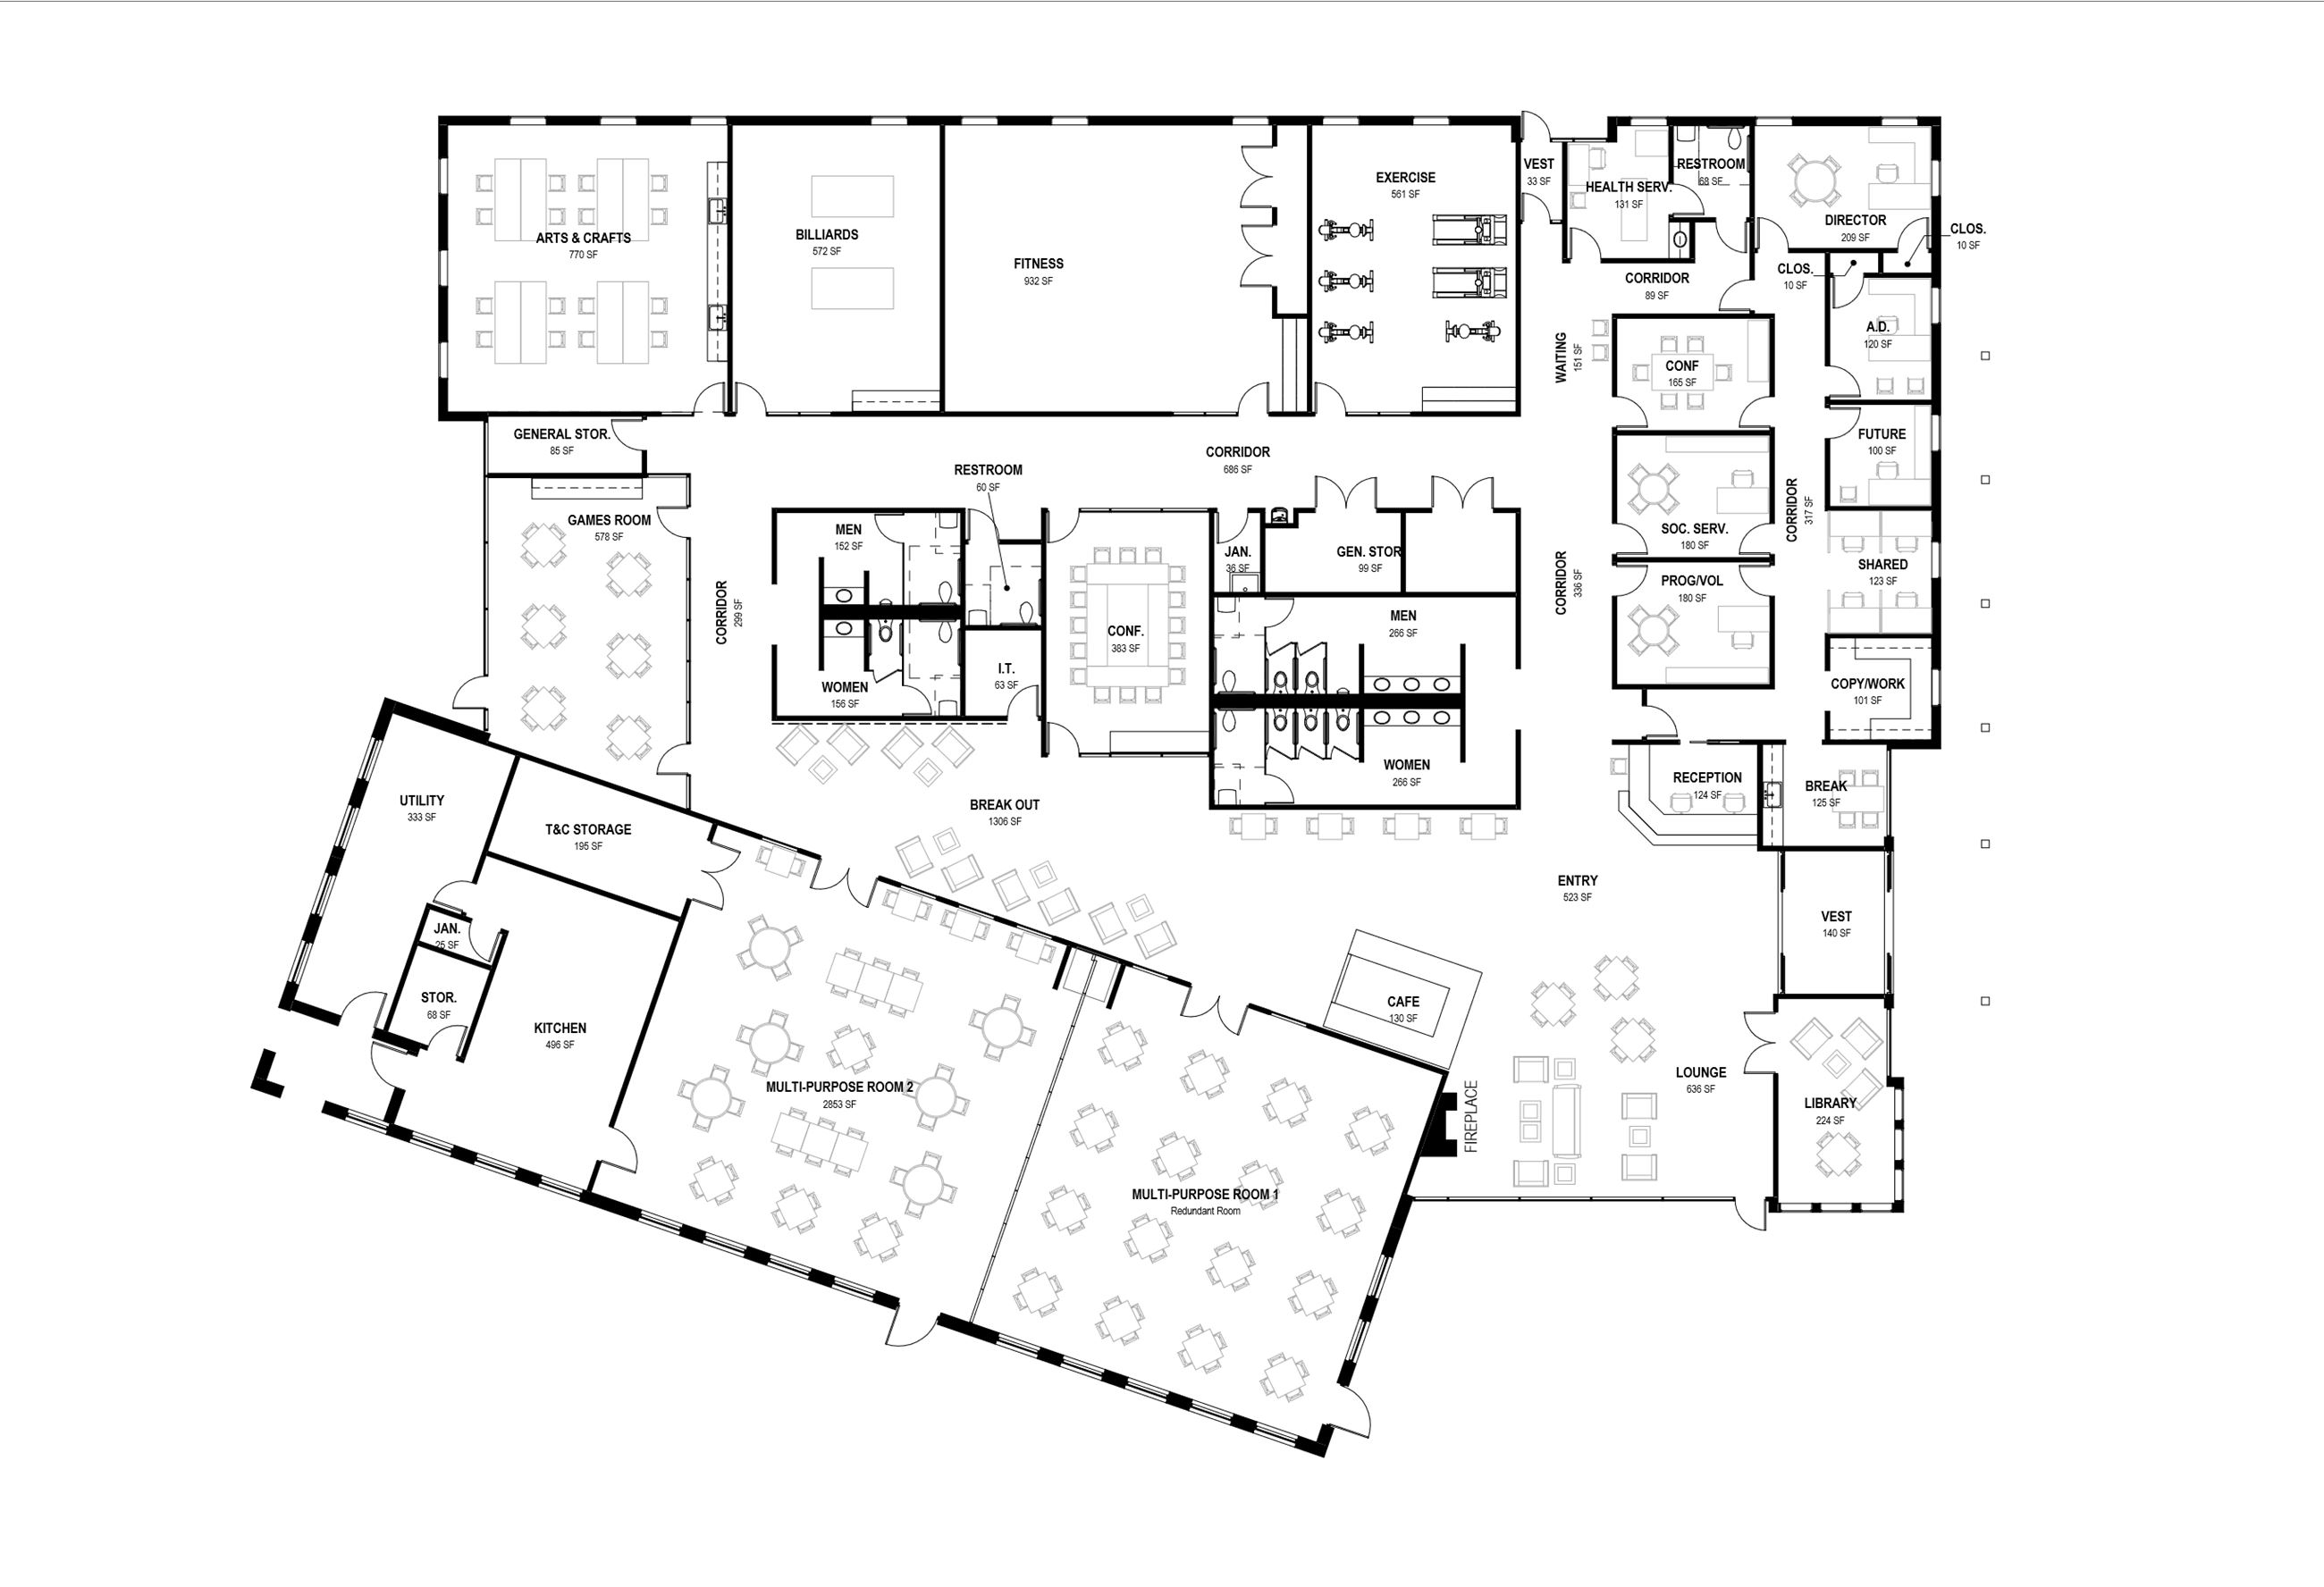 Revised Senior Center Design Oct 2020